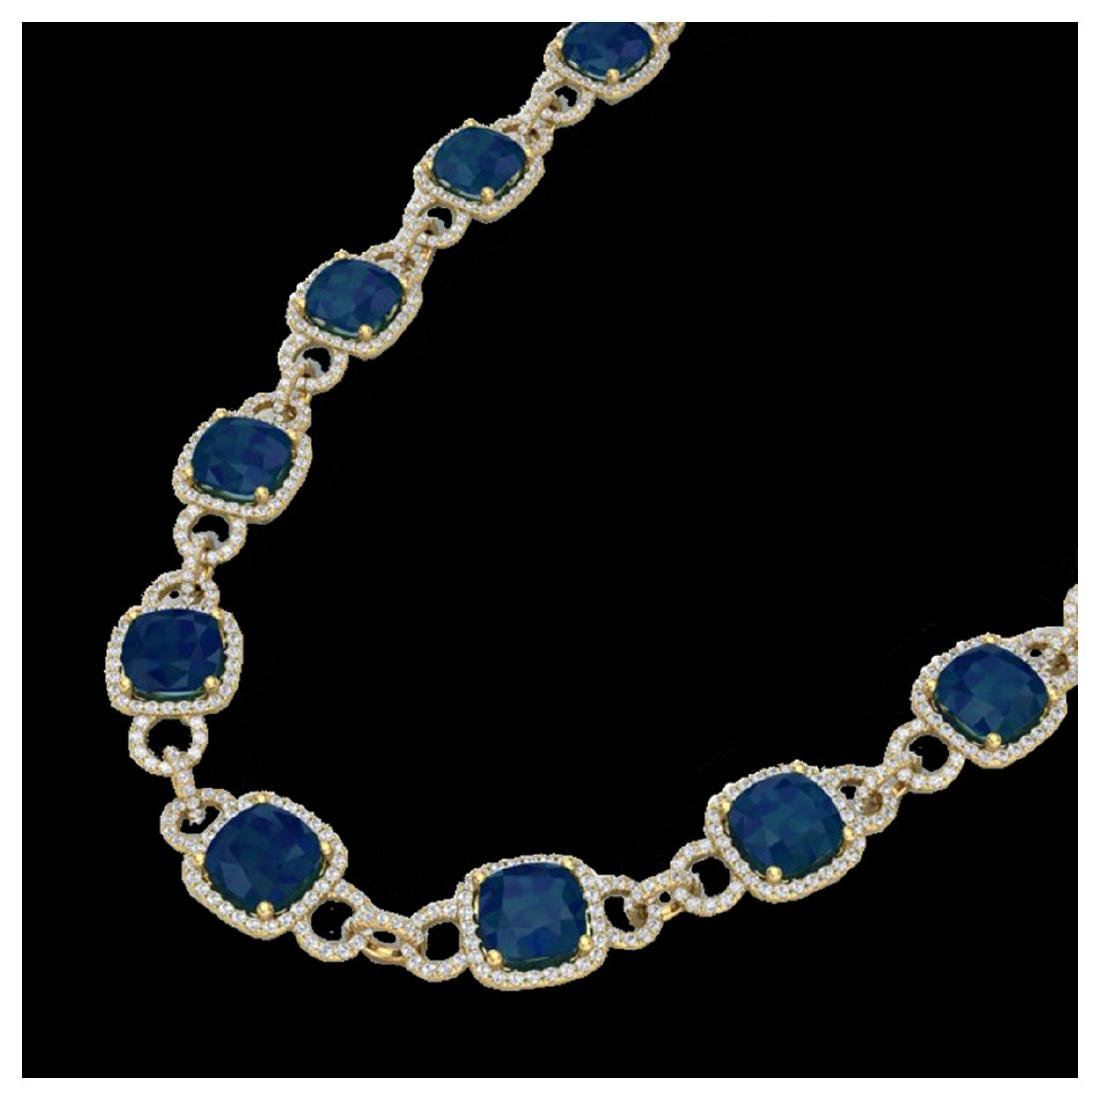 56 ctw Sapphire & VS/SI Diamond Eternity Necklace 14K